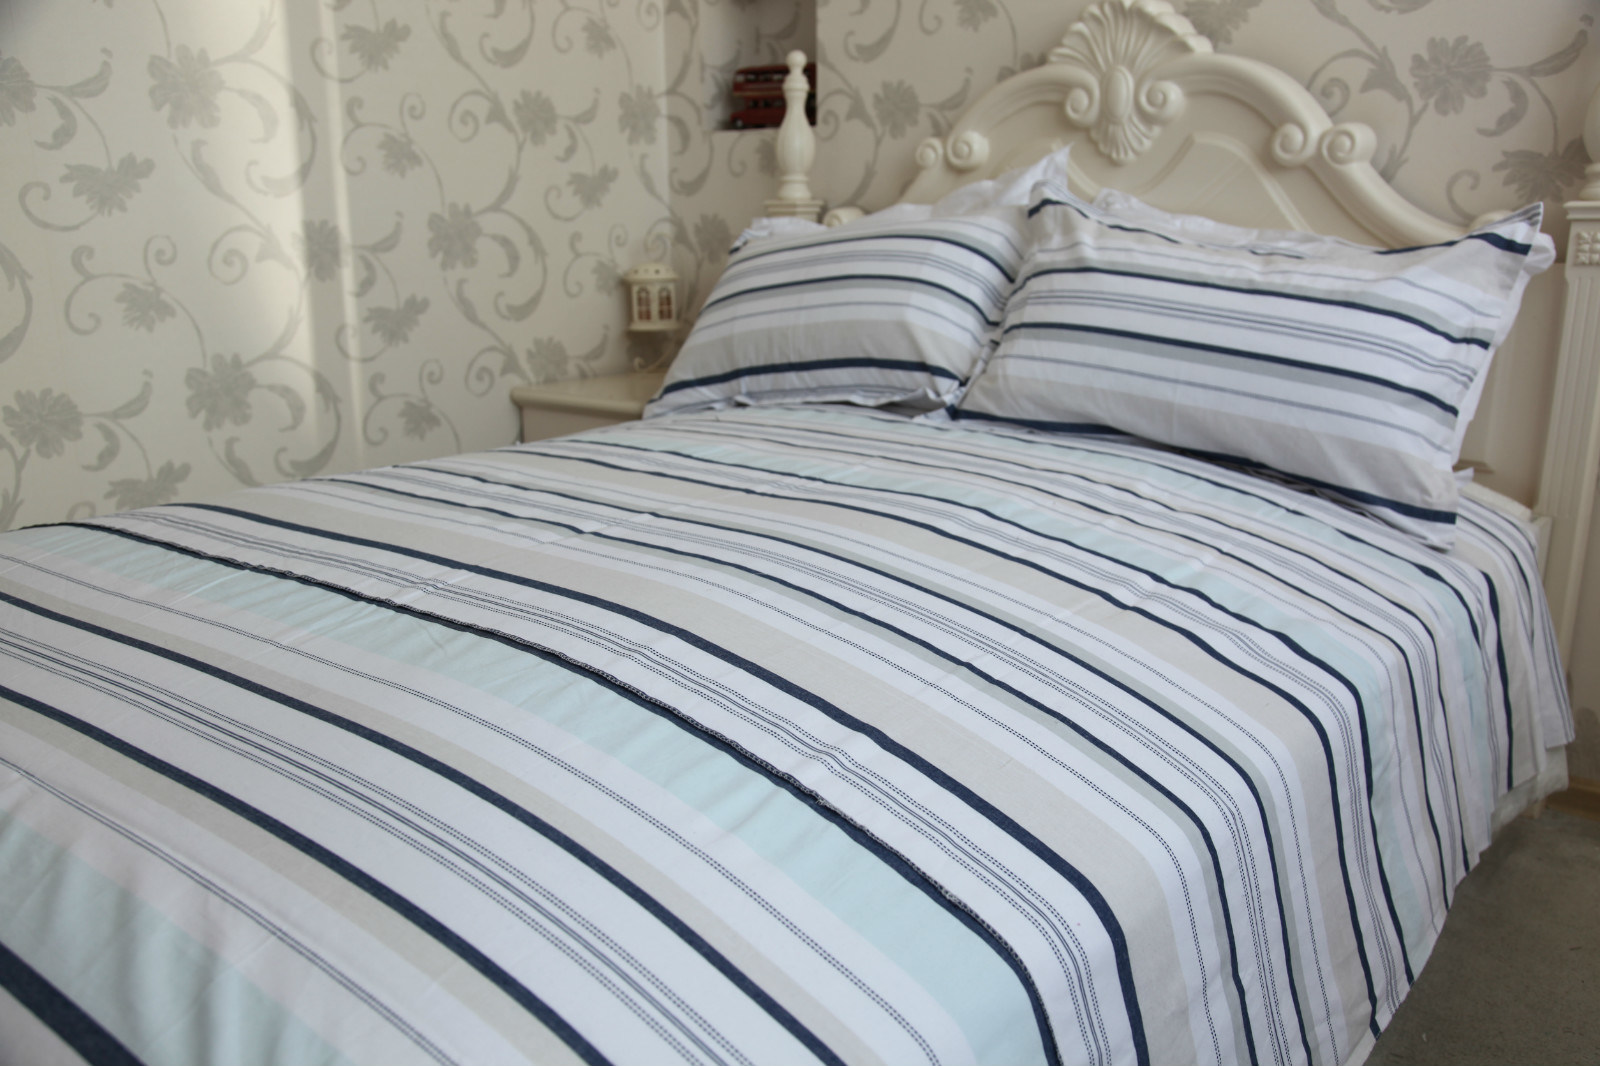 MID-Level Series of Yarn Dyed Fabric Bedding Sets